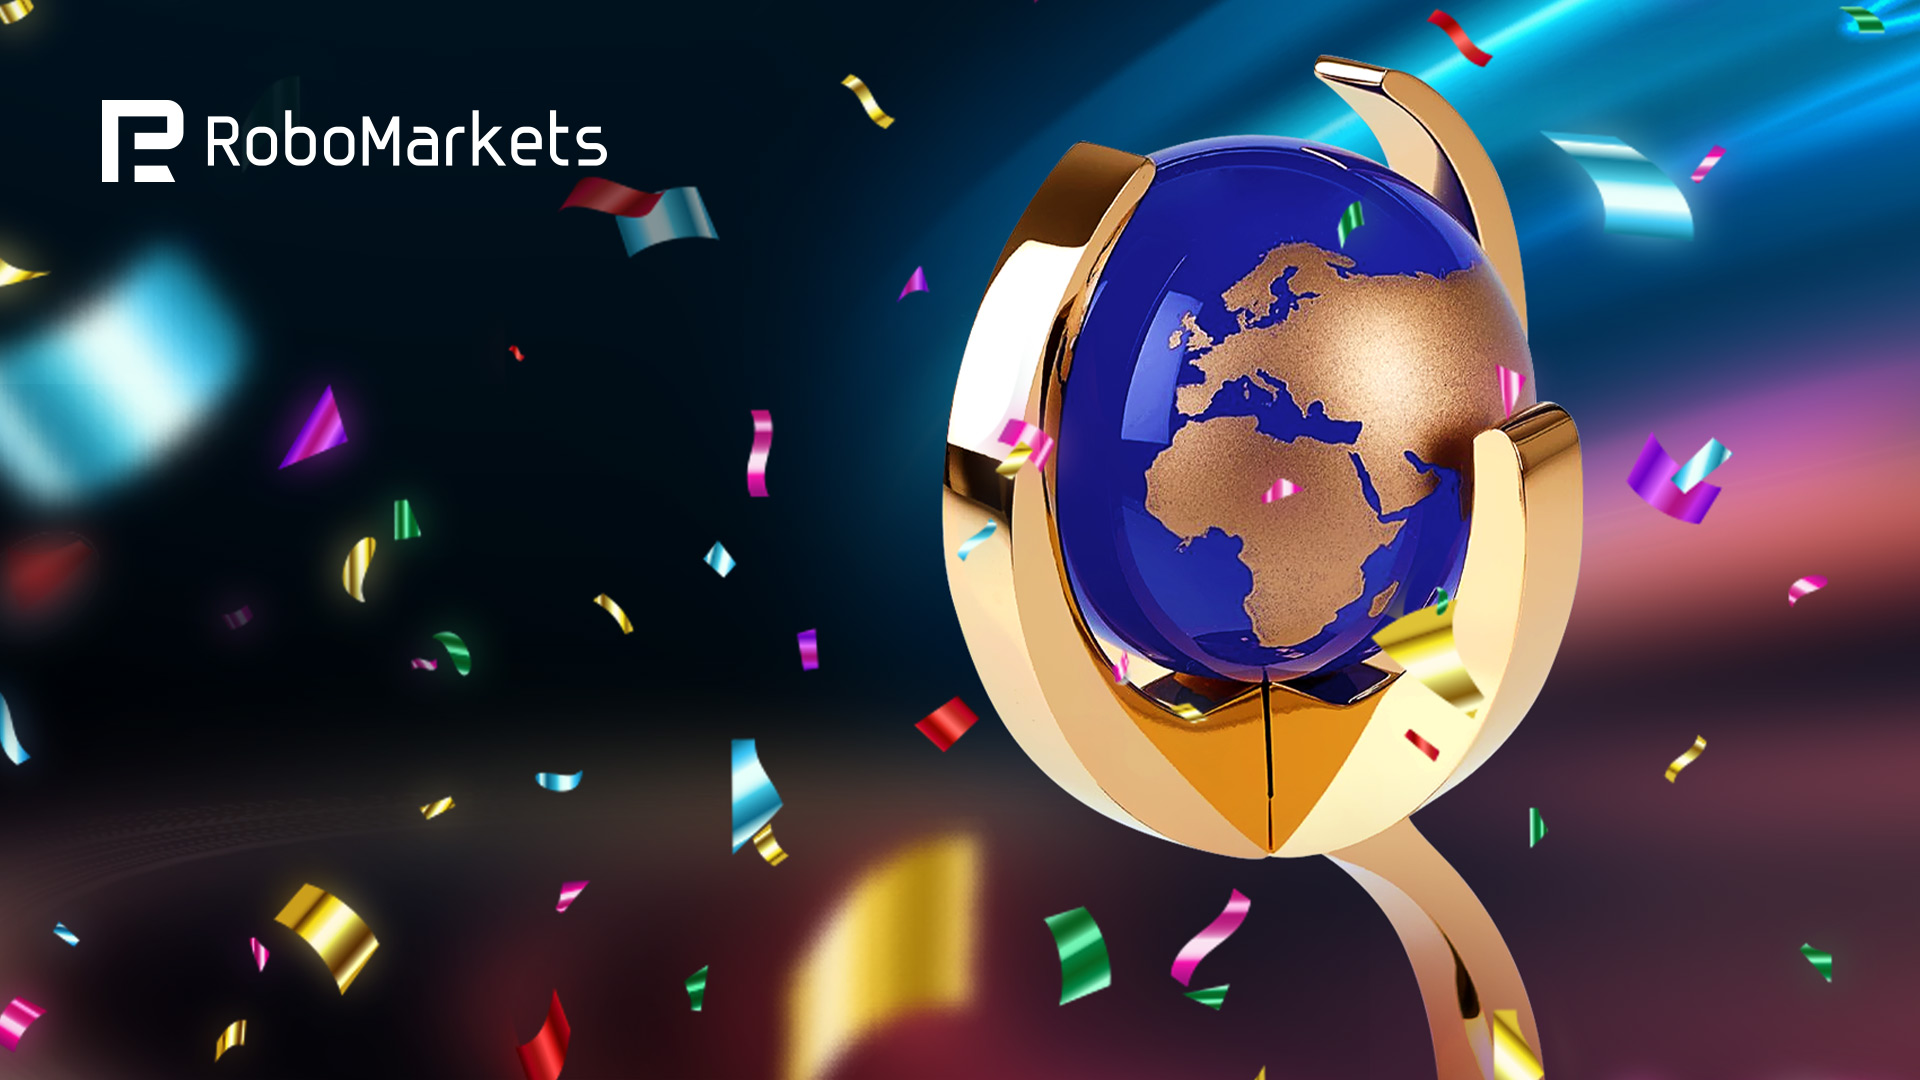 """RoboMarkets Named the """"Most Trusted European Broker"""""""